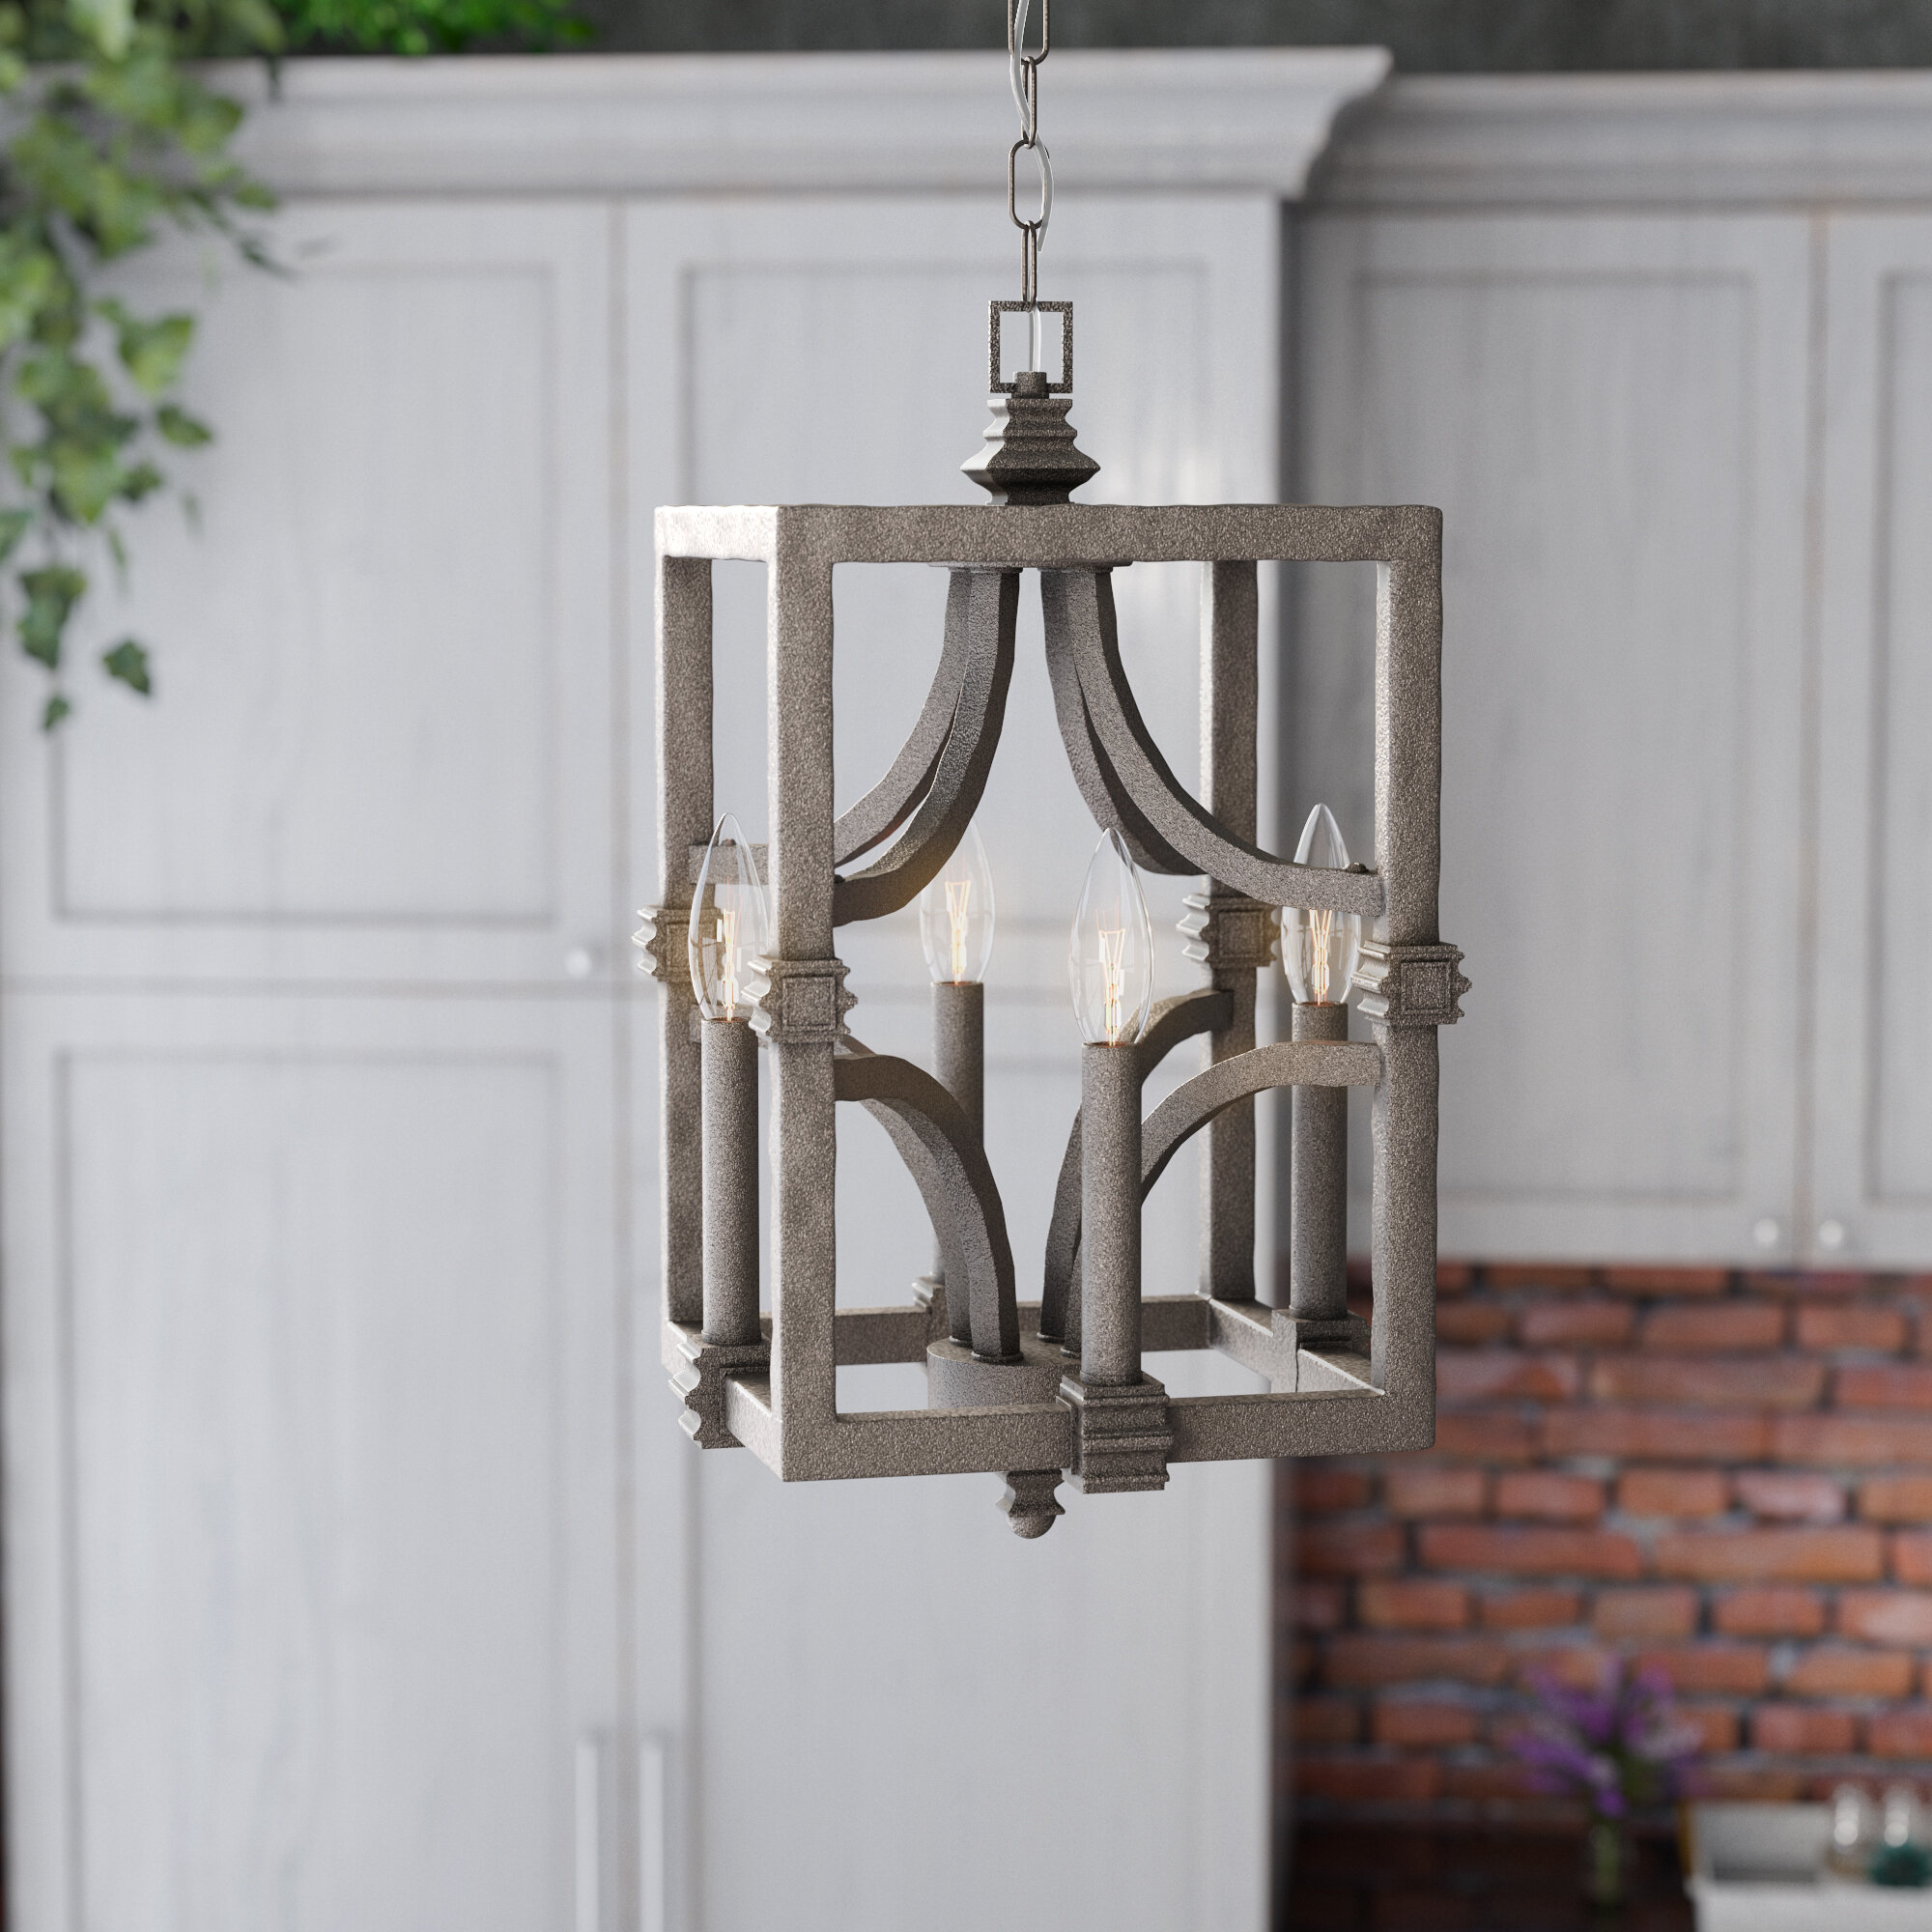 products linking with by brass links minimal fixture dunn studio light a metal shown modern in brushed flute s pendant